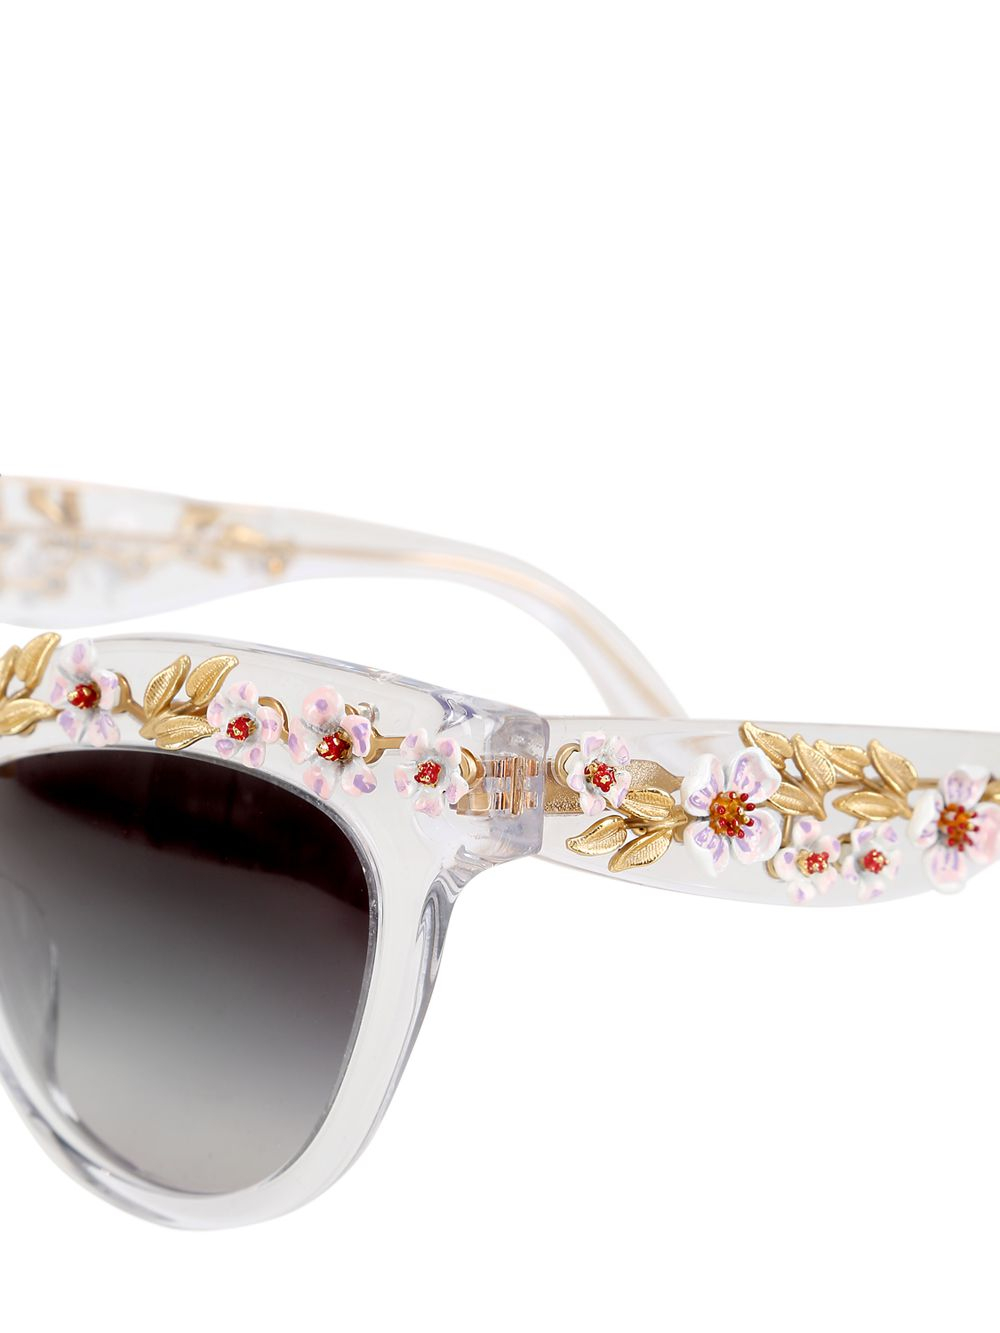 1dbb8ad3136 Dolce   Gabbana Flowers Embellished Cat Eye Sunglasses - Lyst